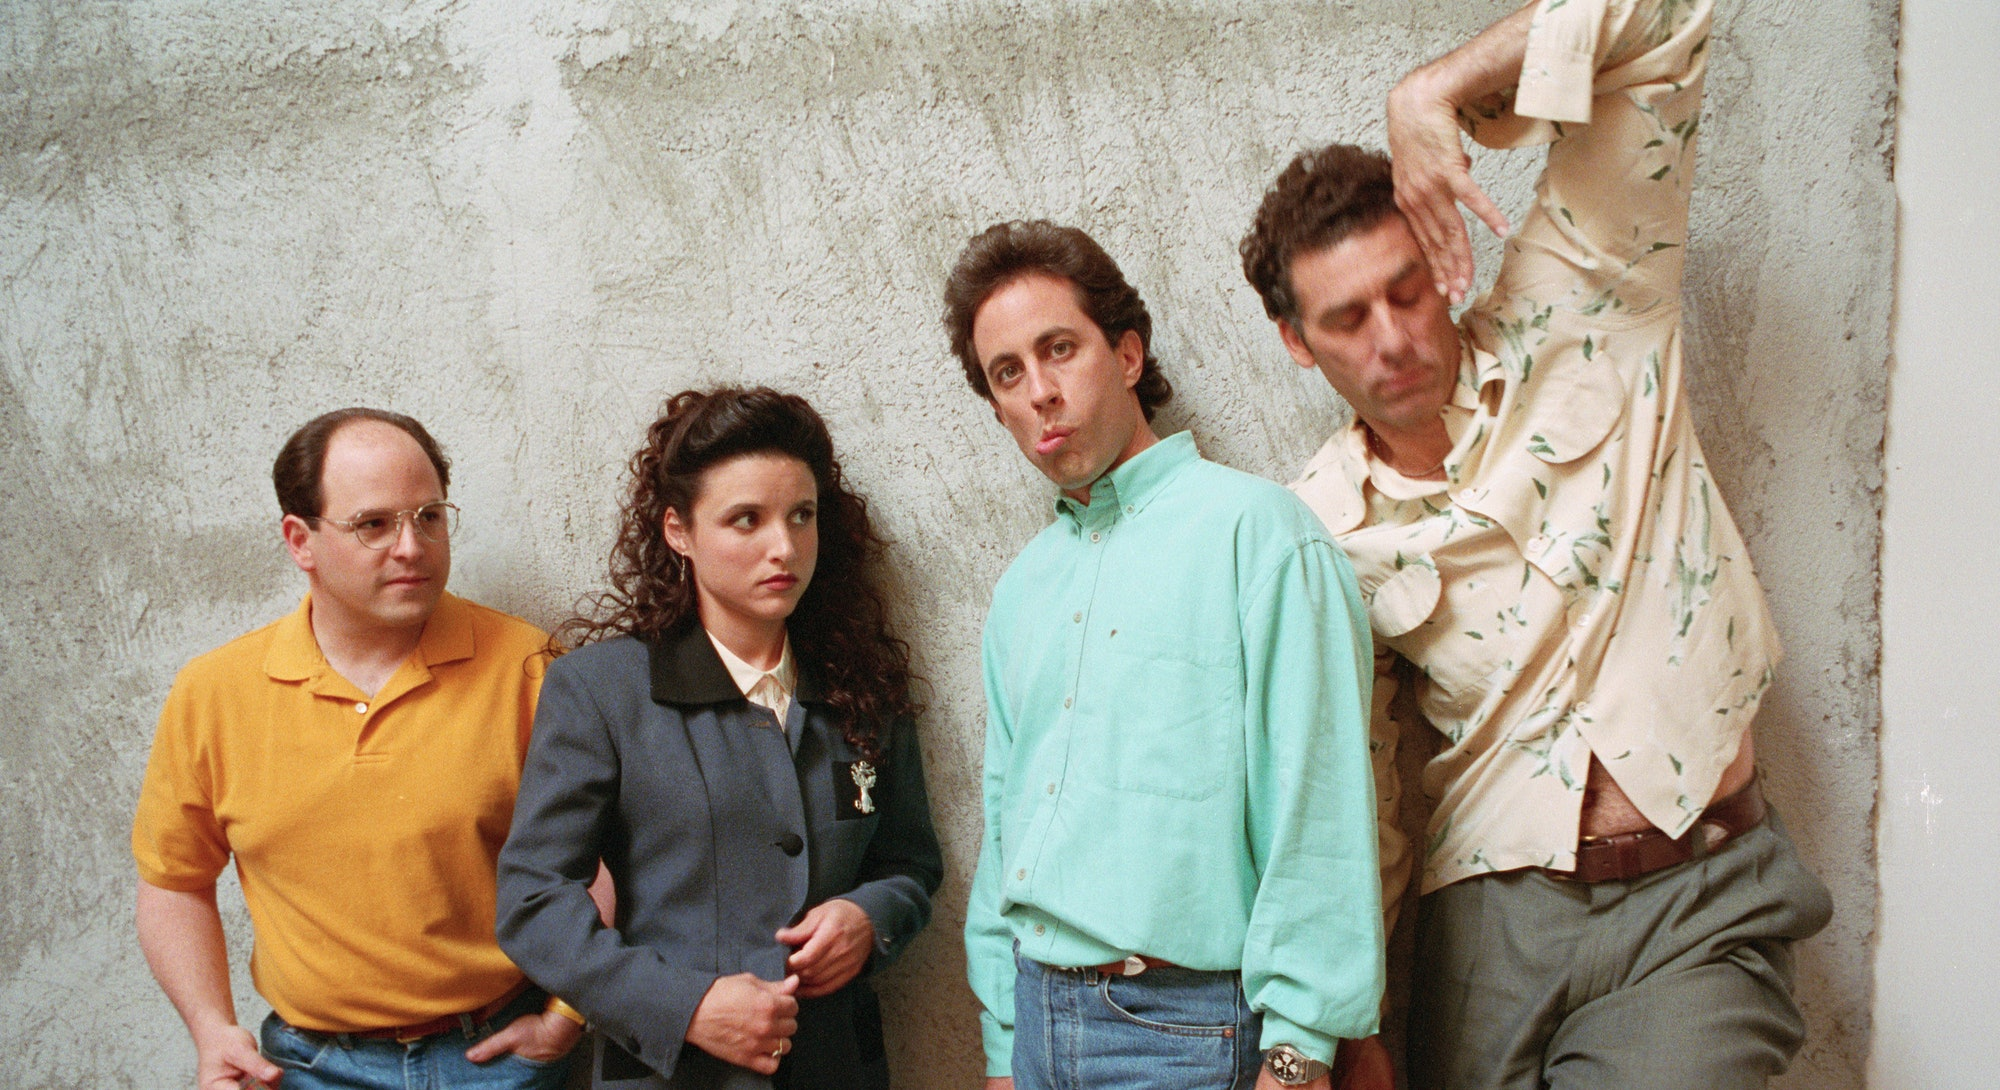 The Cast of Seinfeld   (Photo by David Turnley/Corbis/VCG via Getty Images)